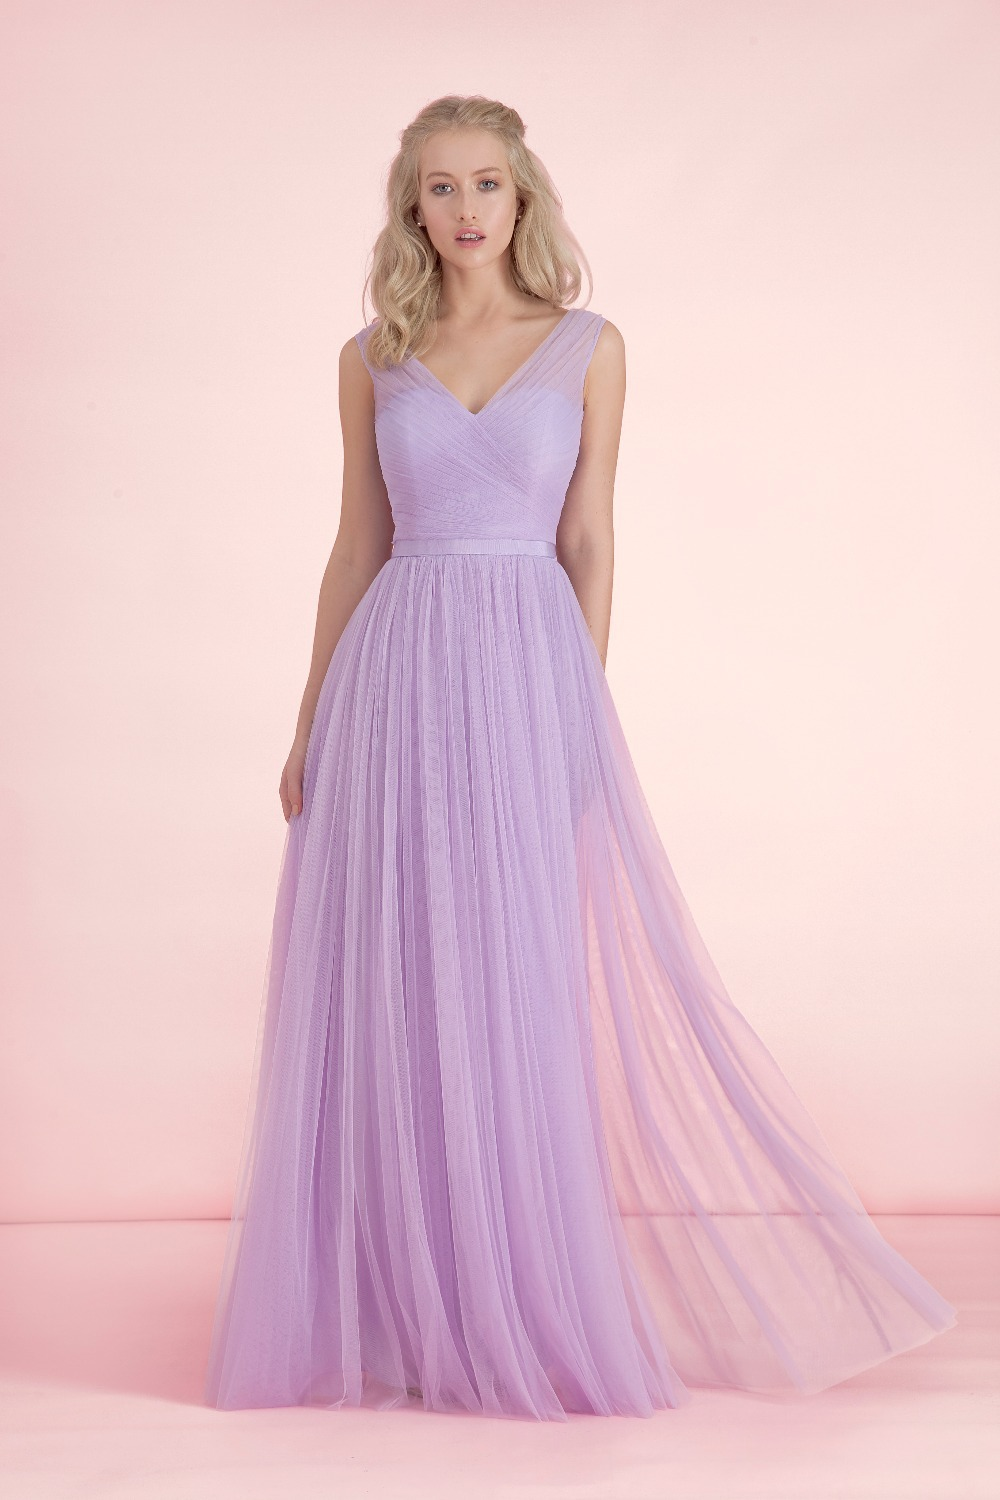 long dresses for wedding guests graceful lavender bridesmaid dresses floor length a line girls party